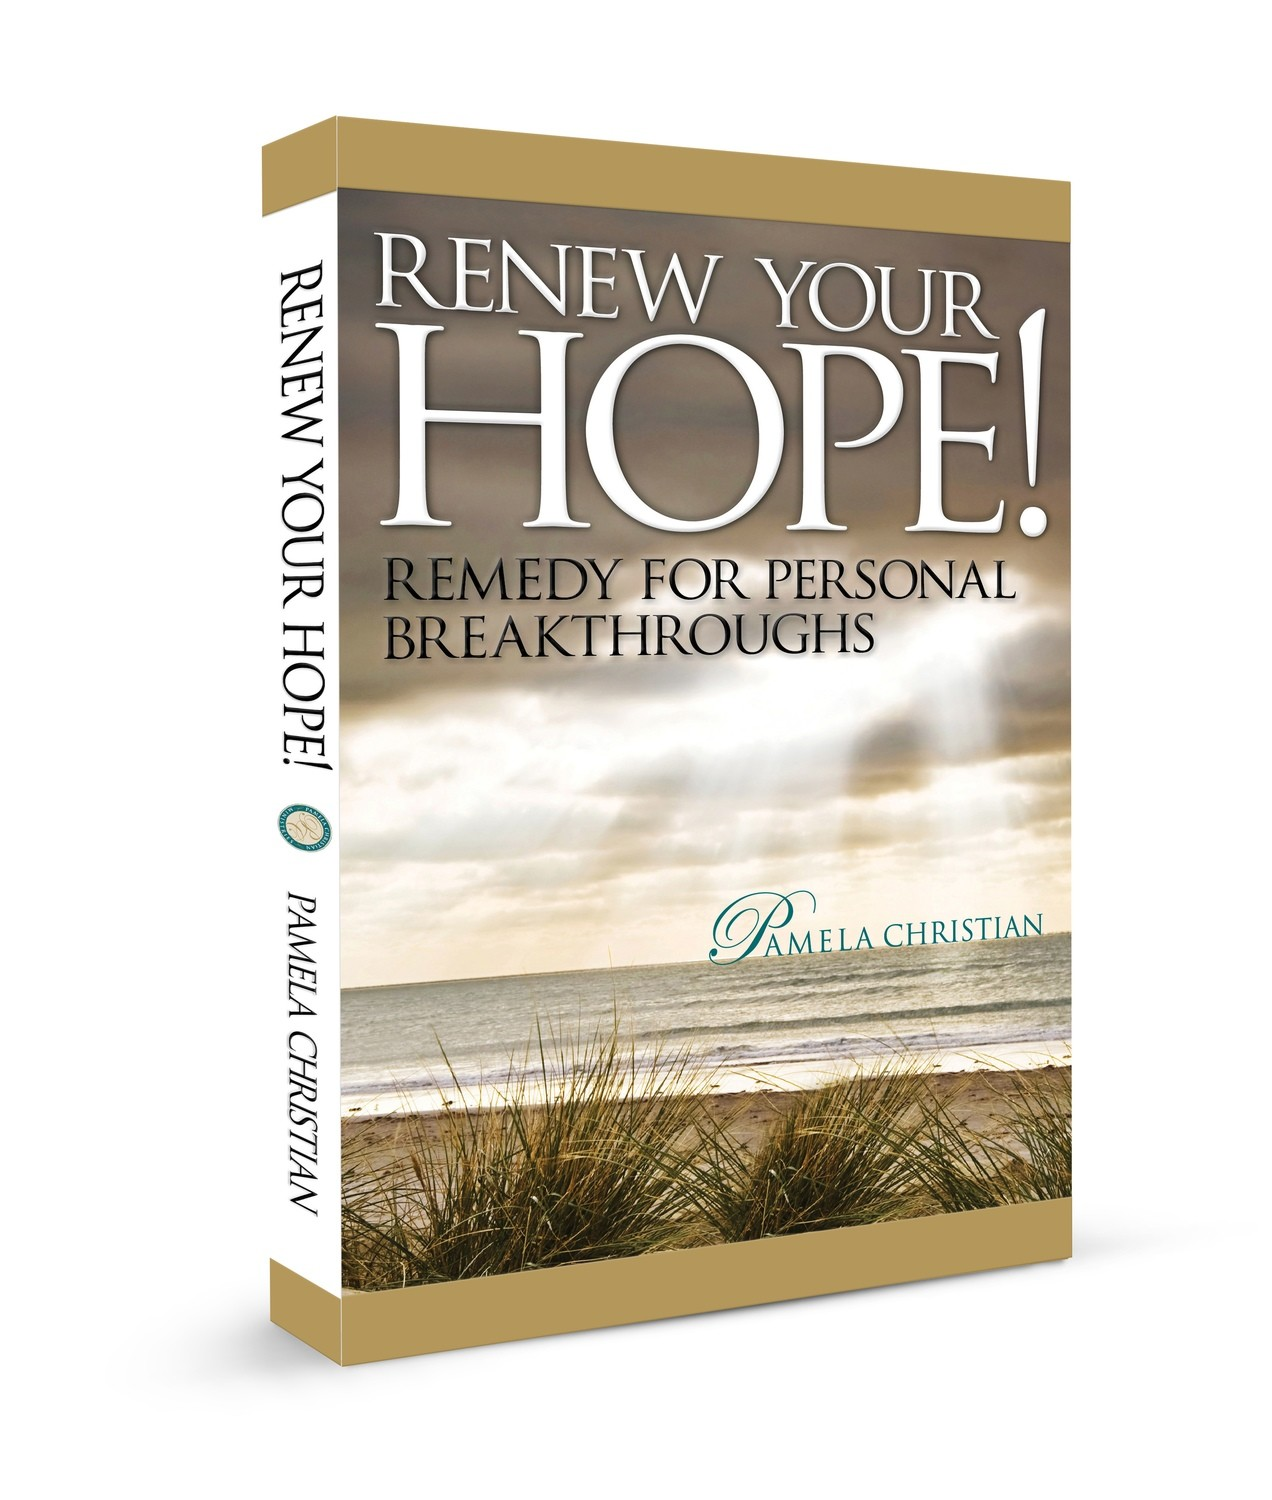 Renew Your Hope! Remedy for Personal Breakthroughs Ebook